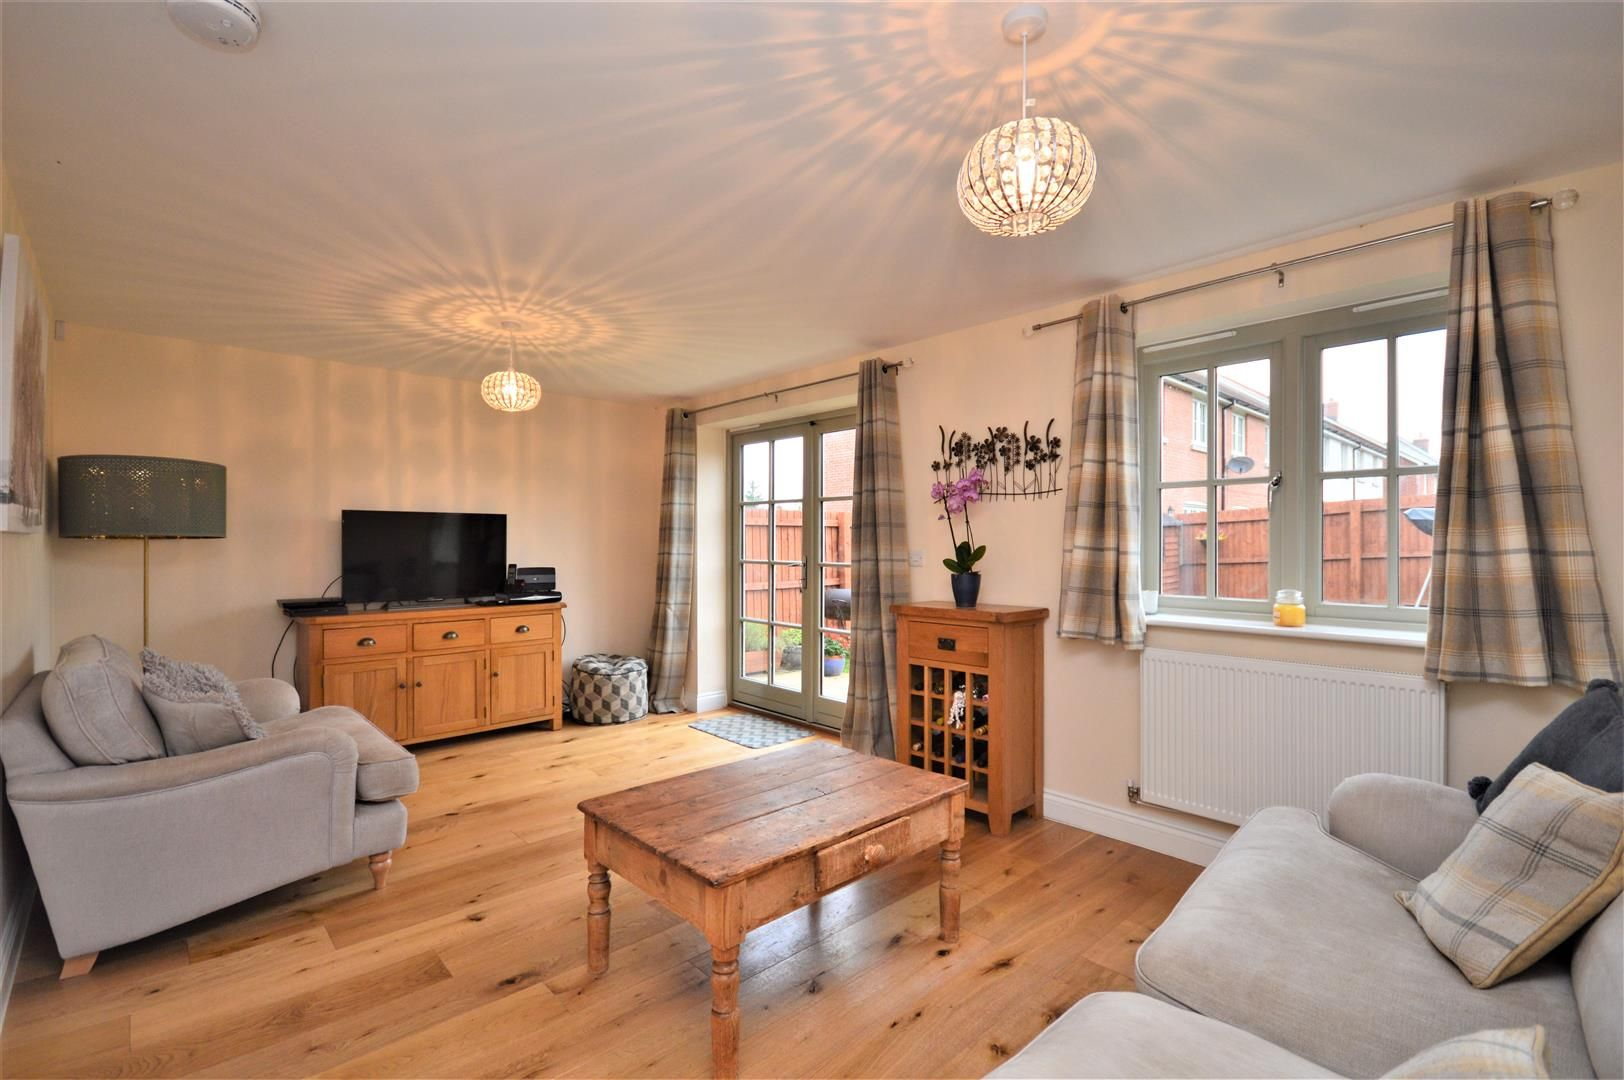 3 bed semi-detached for sale in Bodenham  - Property Image 4